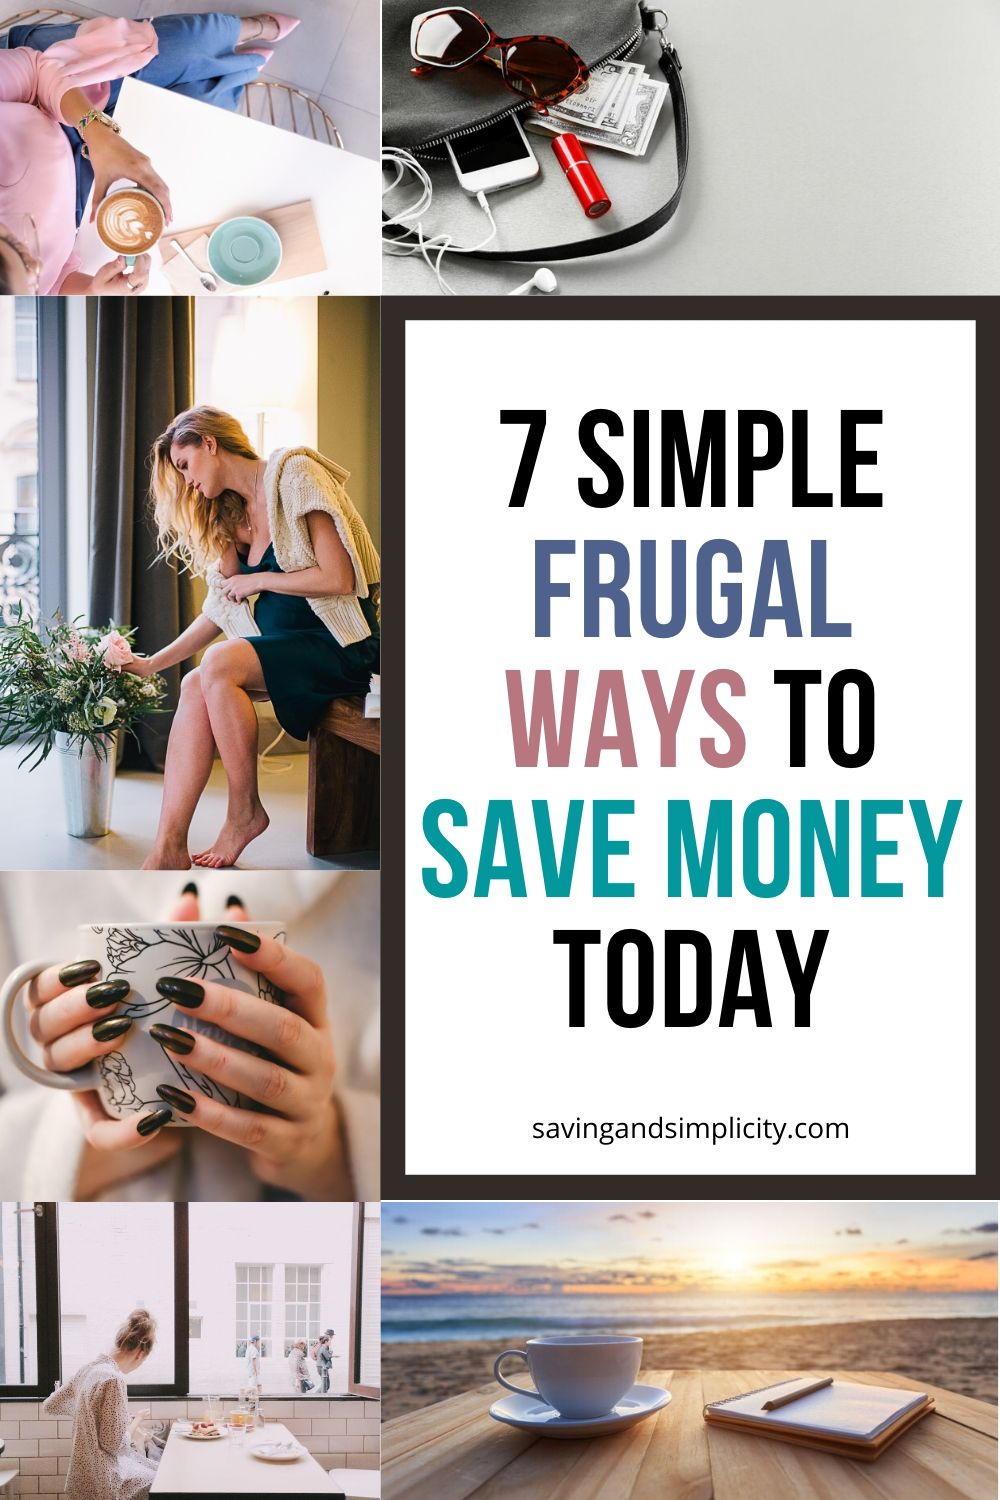 simple frugal ways to save money